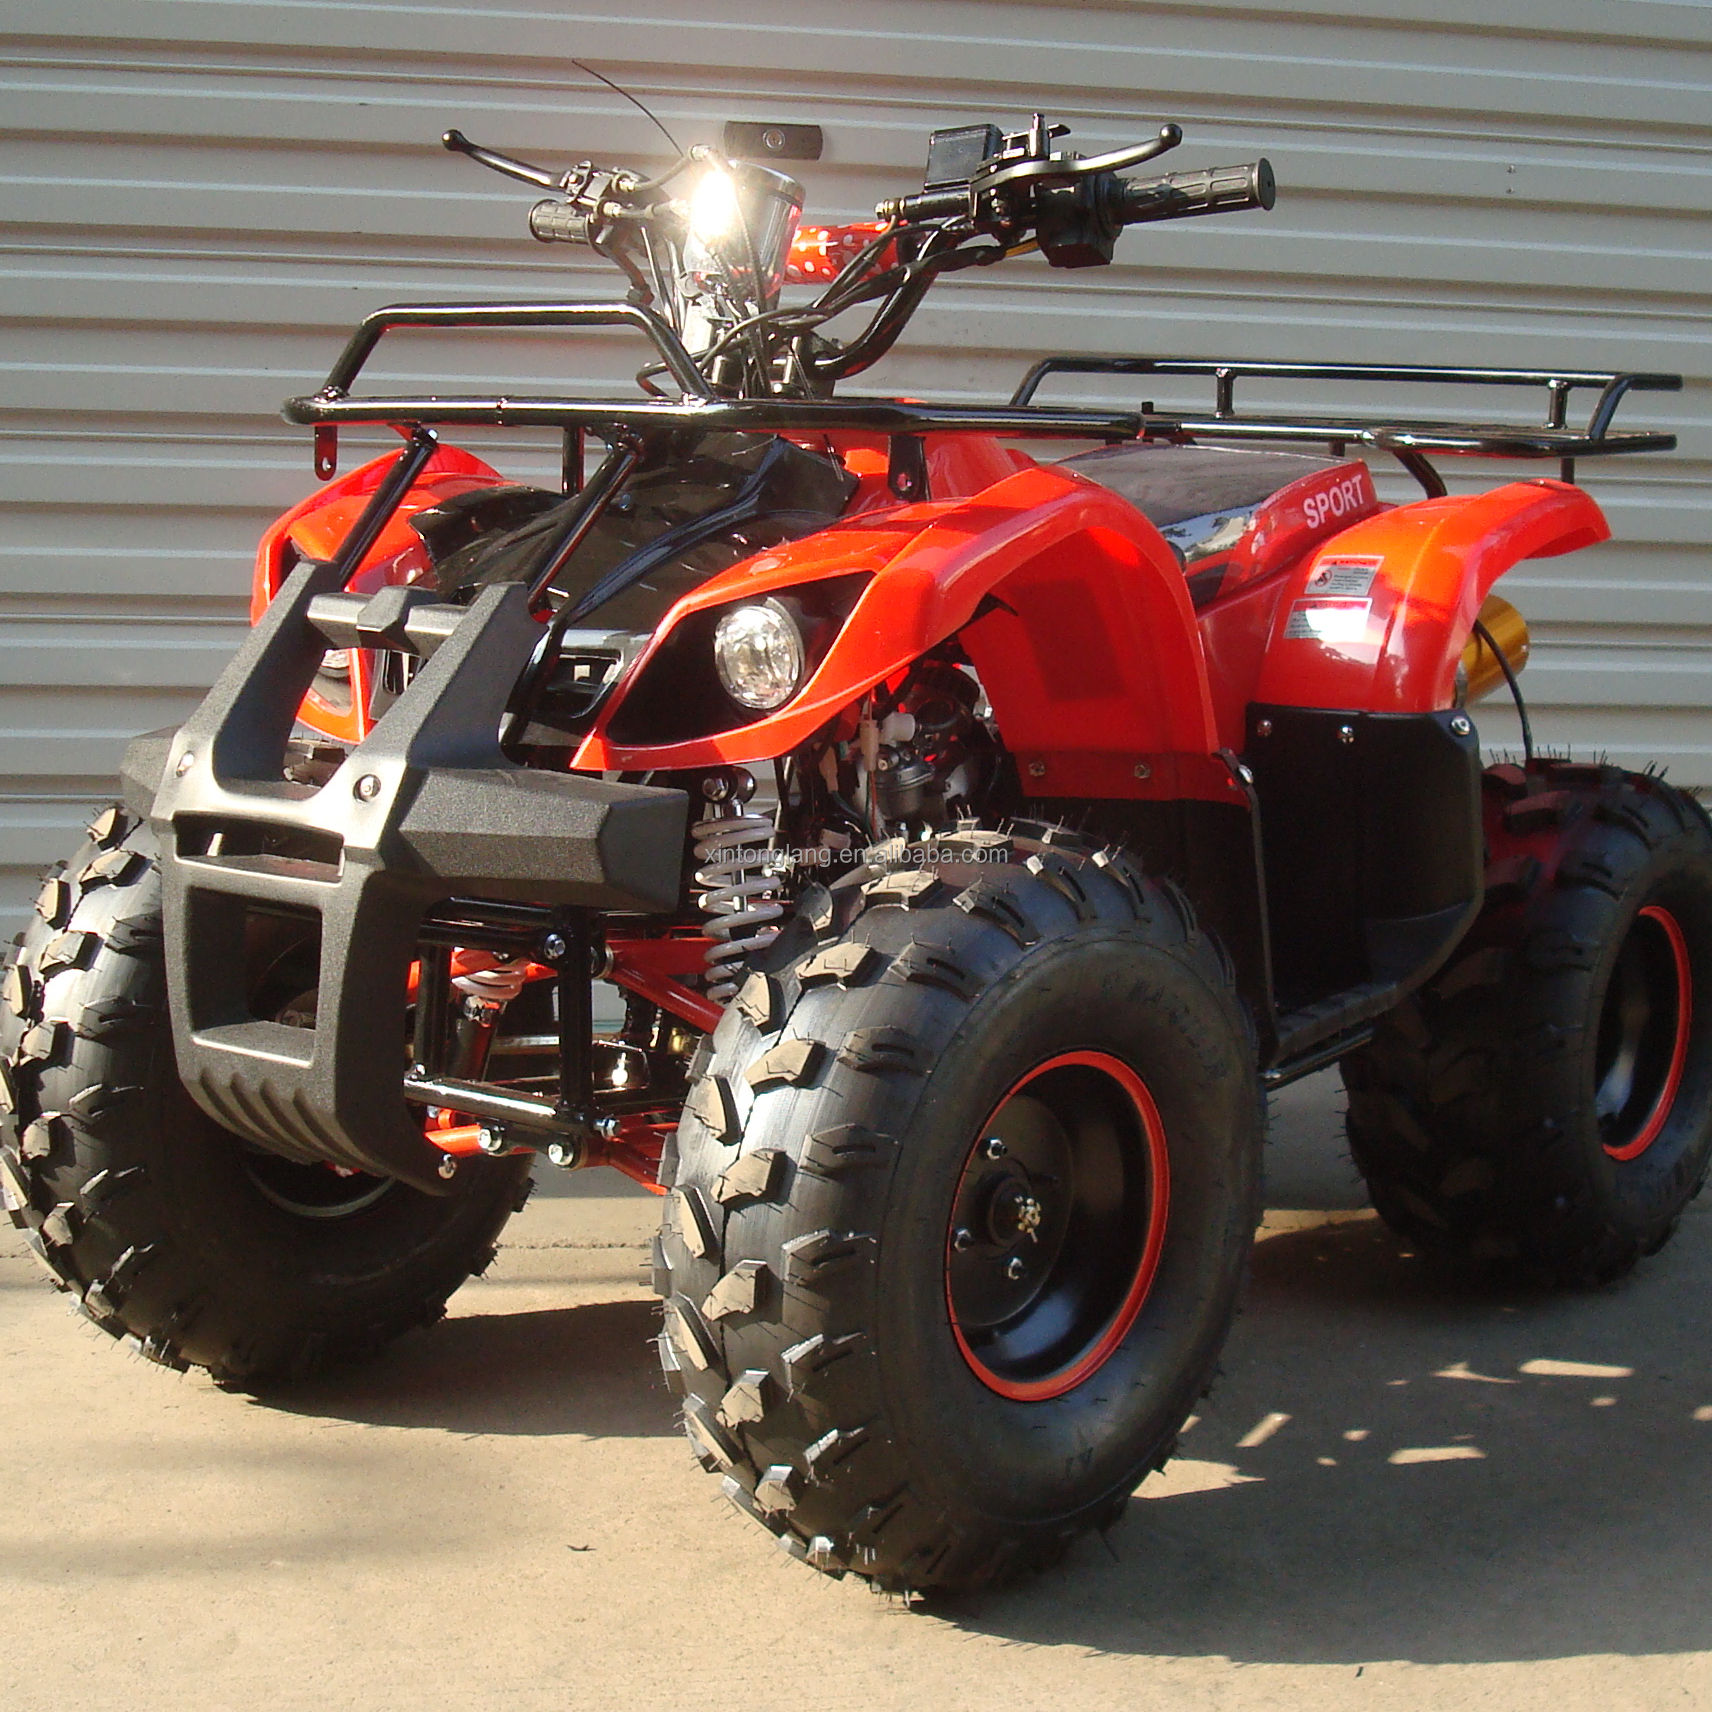 Cheap 4 stroke 110cc Quad ATV with Reverse Gear ATV Quad Bike for sale CE Approved